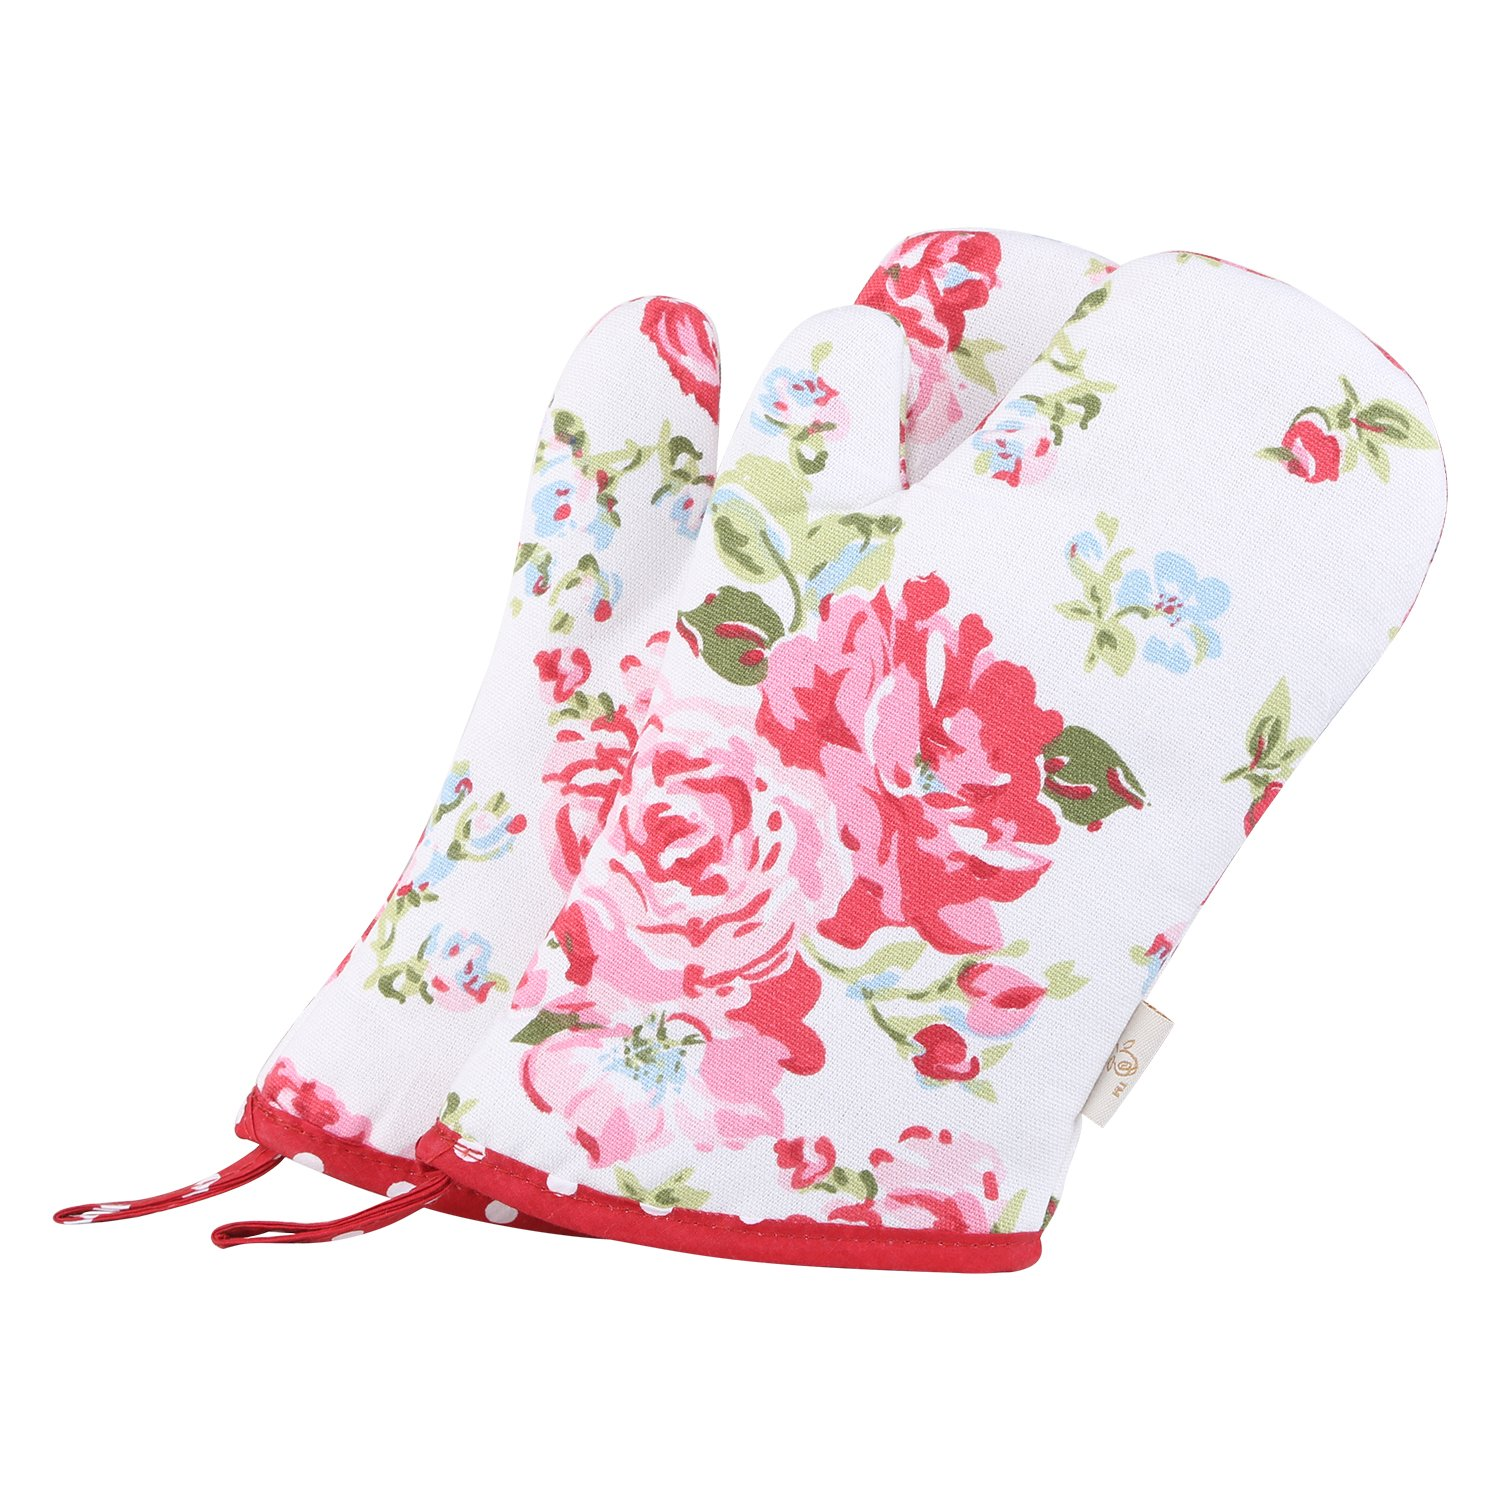 Neoviva Cotton Quilting Child Oven Mitts for Play Kitchen, Pack of 2, Floral Lollipop Red